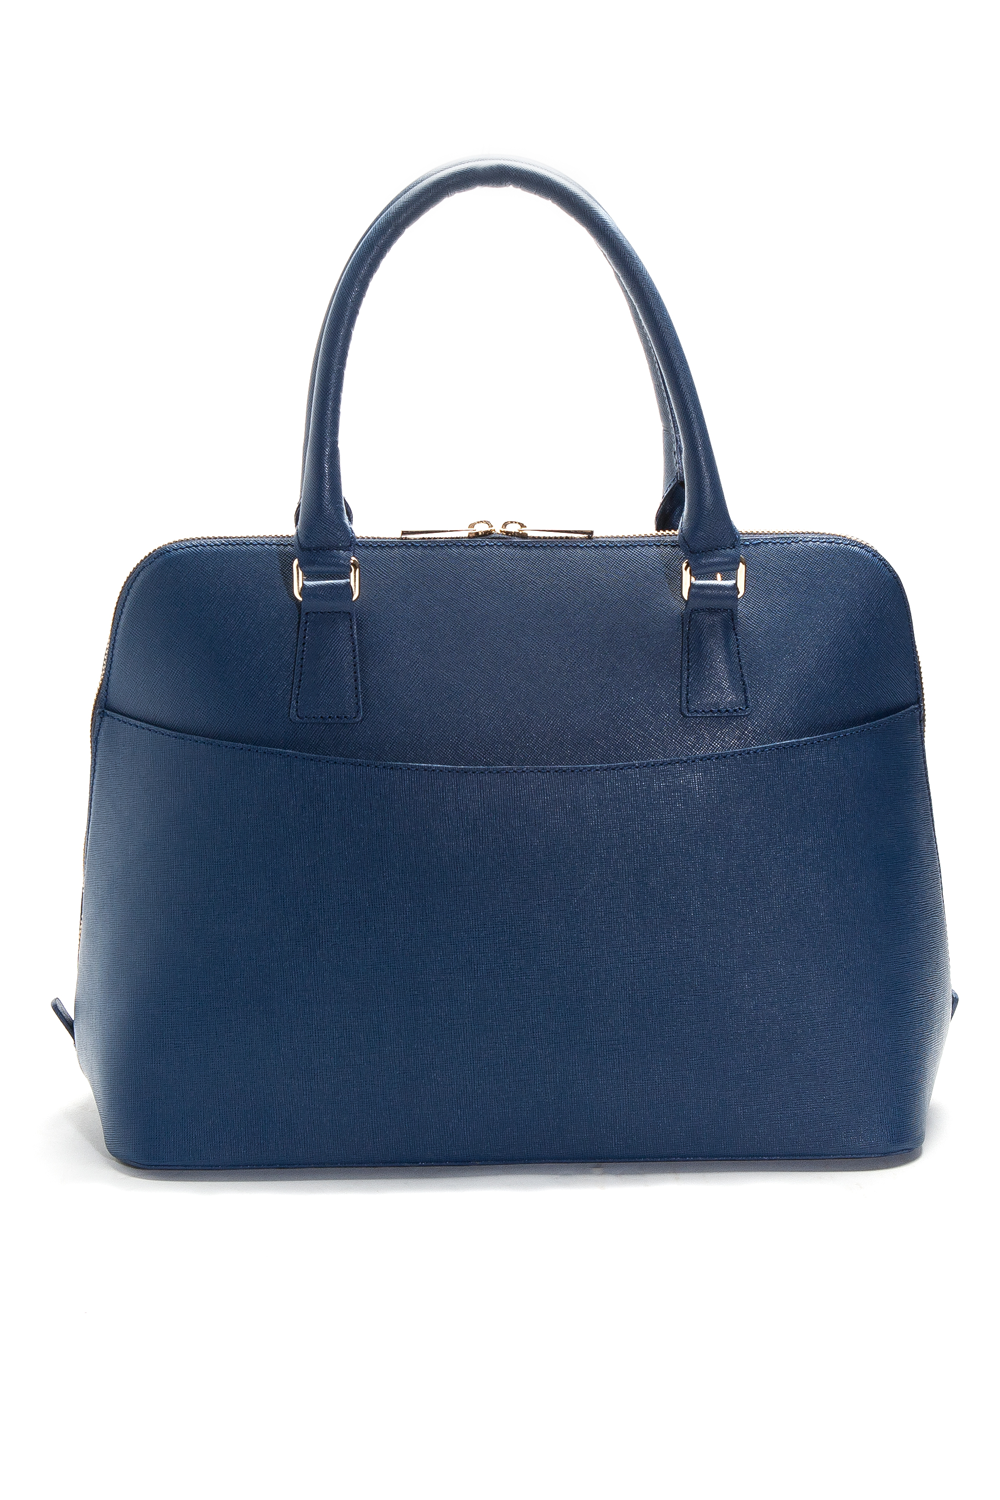 Mel Boteri | Blue Saffiano Leather 'Watson' Tote | Back